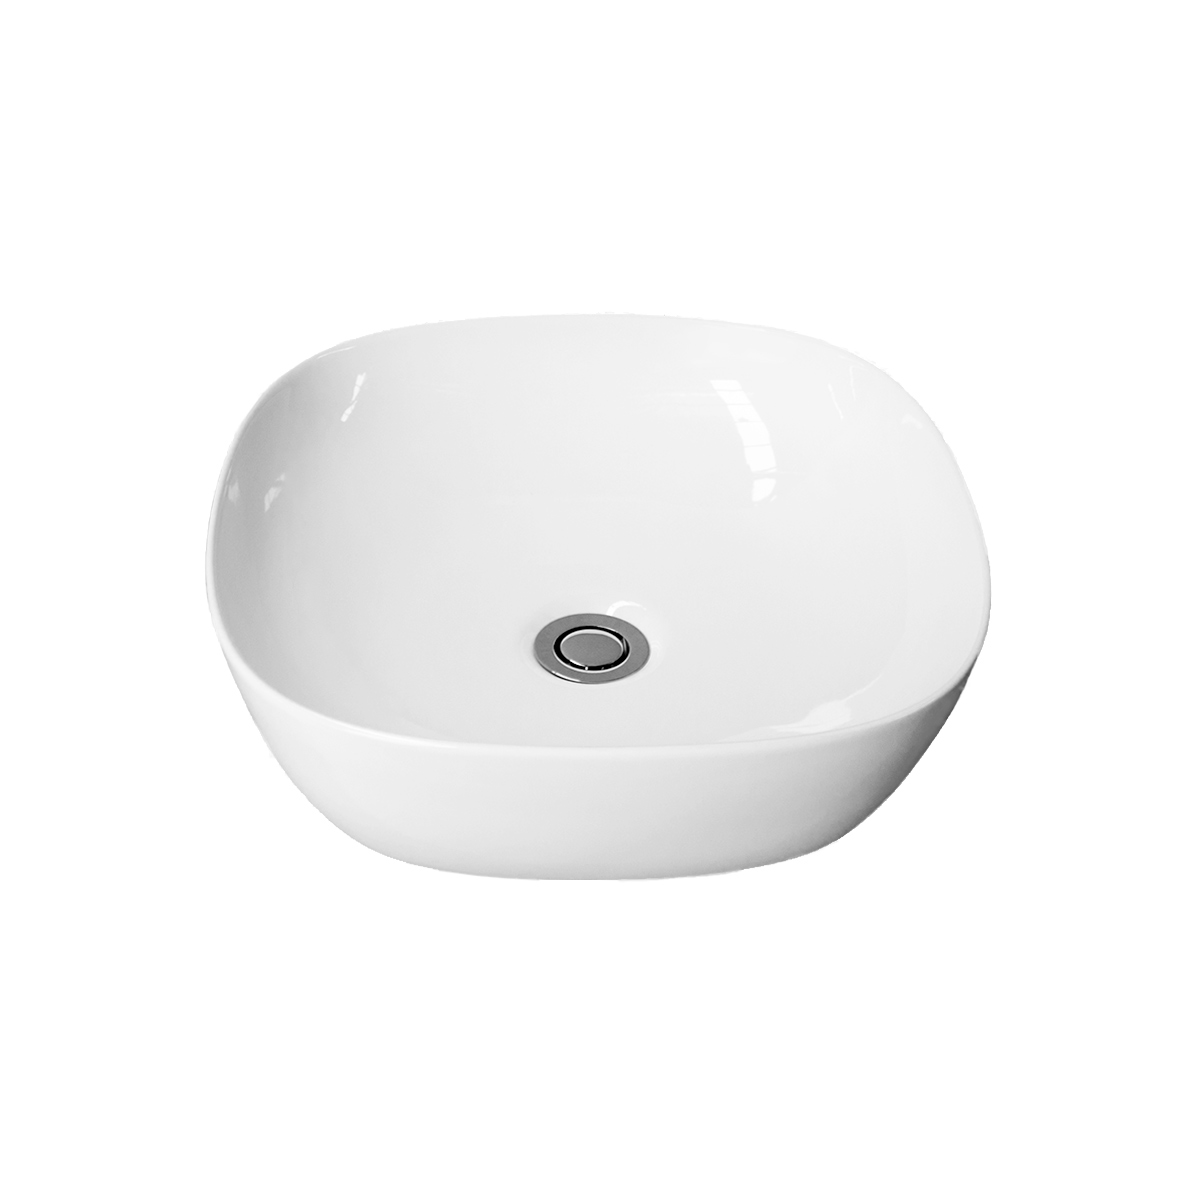 Marley white ceramic Bench Mount basin square with round edges